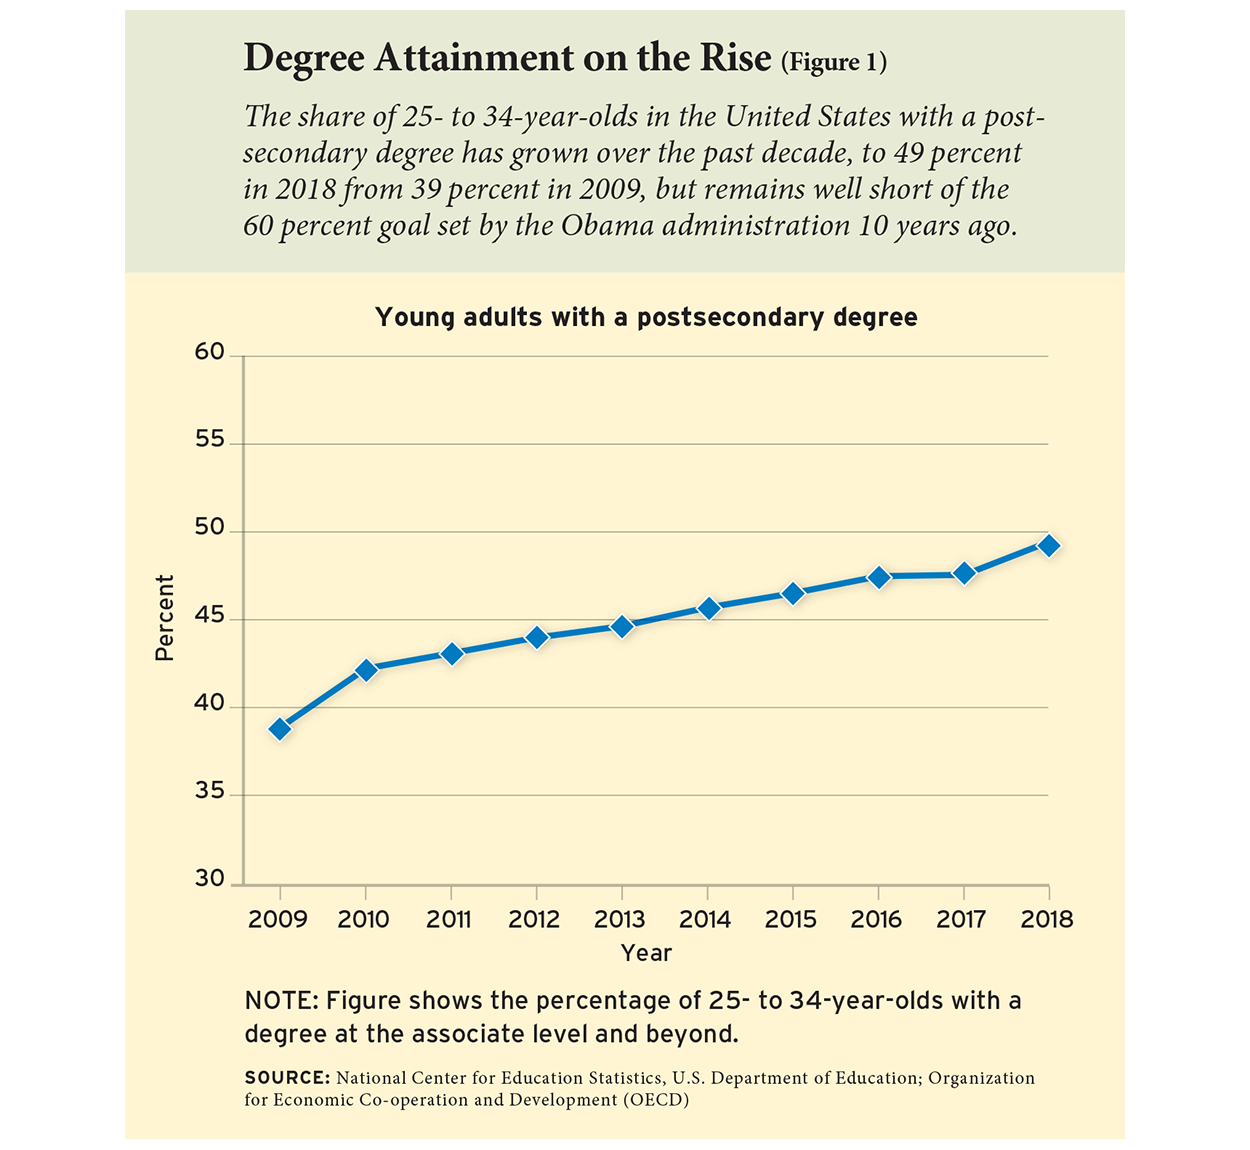 Degree Attainment on the Rise (Figure 1)